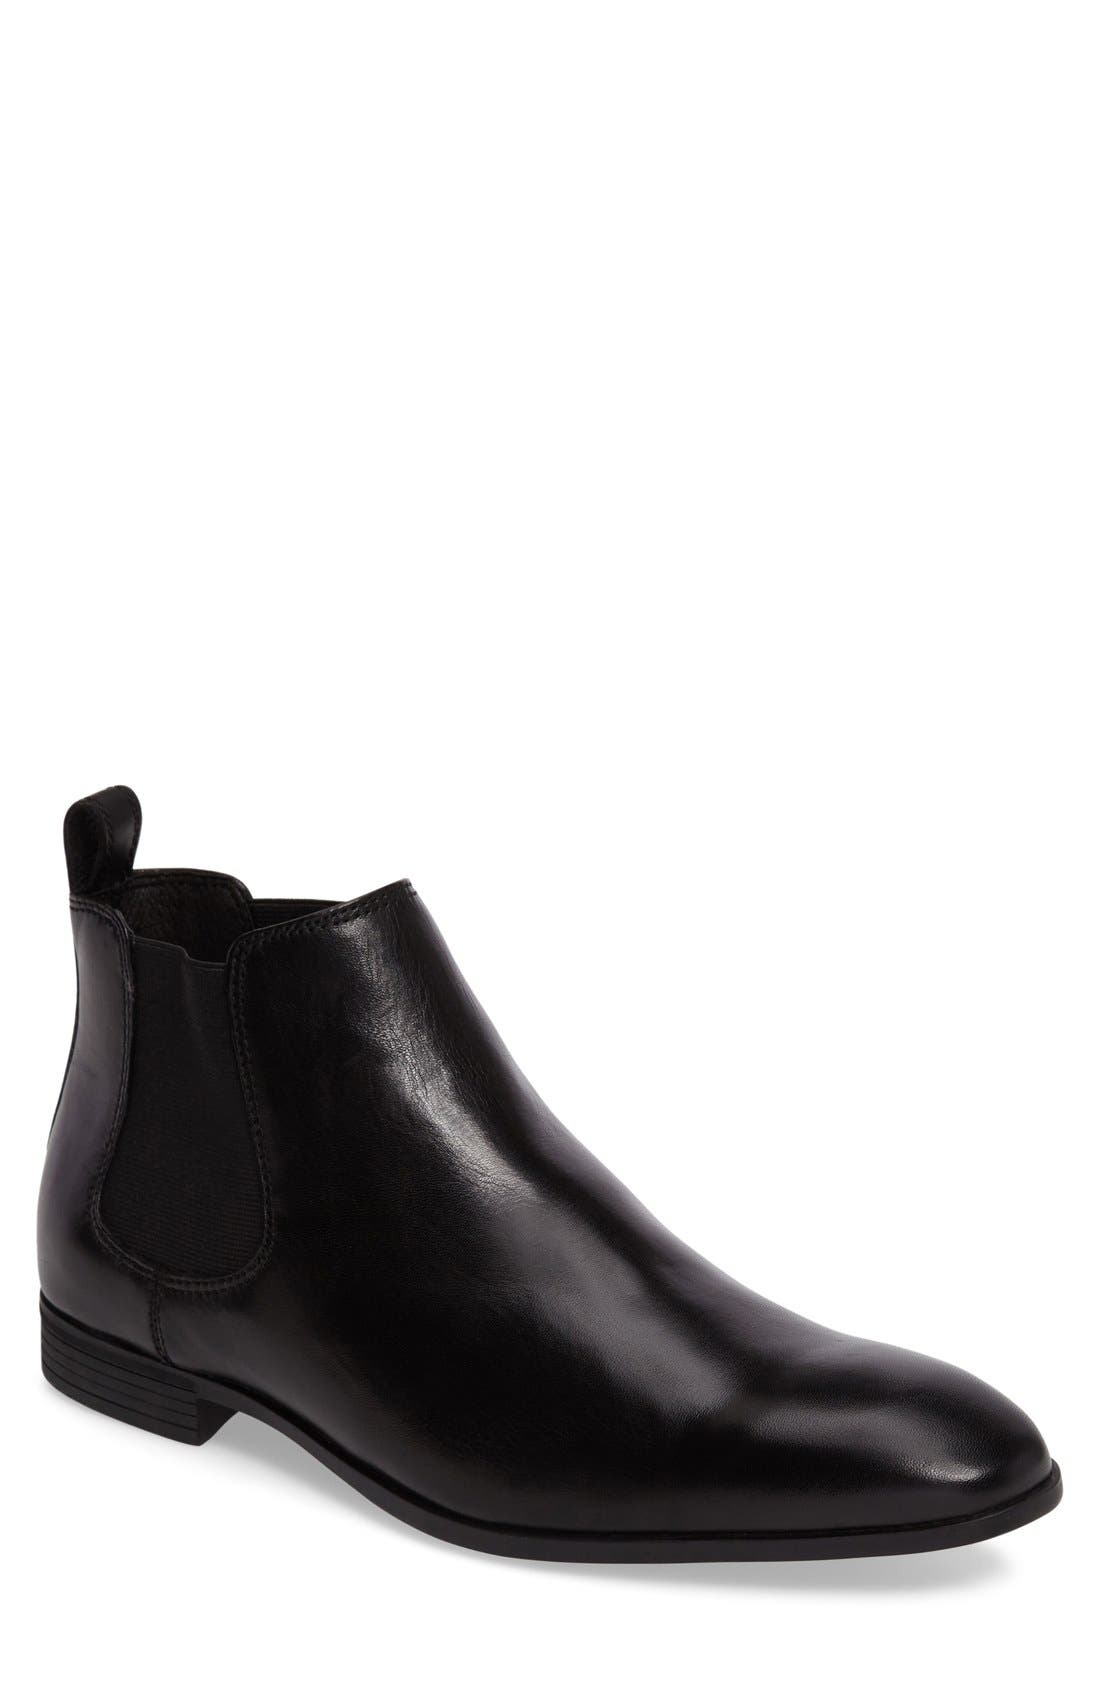 'Huntley' Chelsea Boot,                         Main,                         color, Black Leather